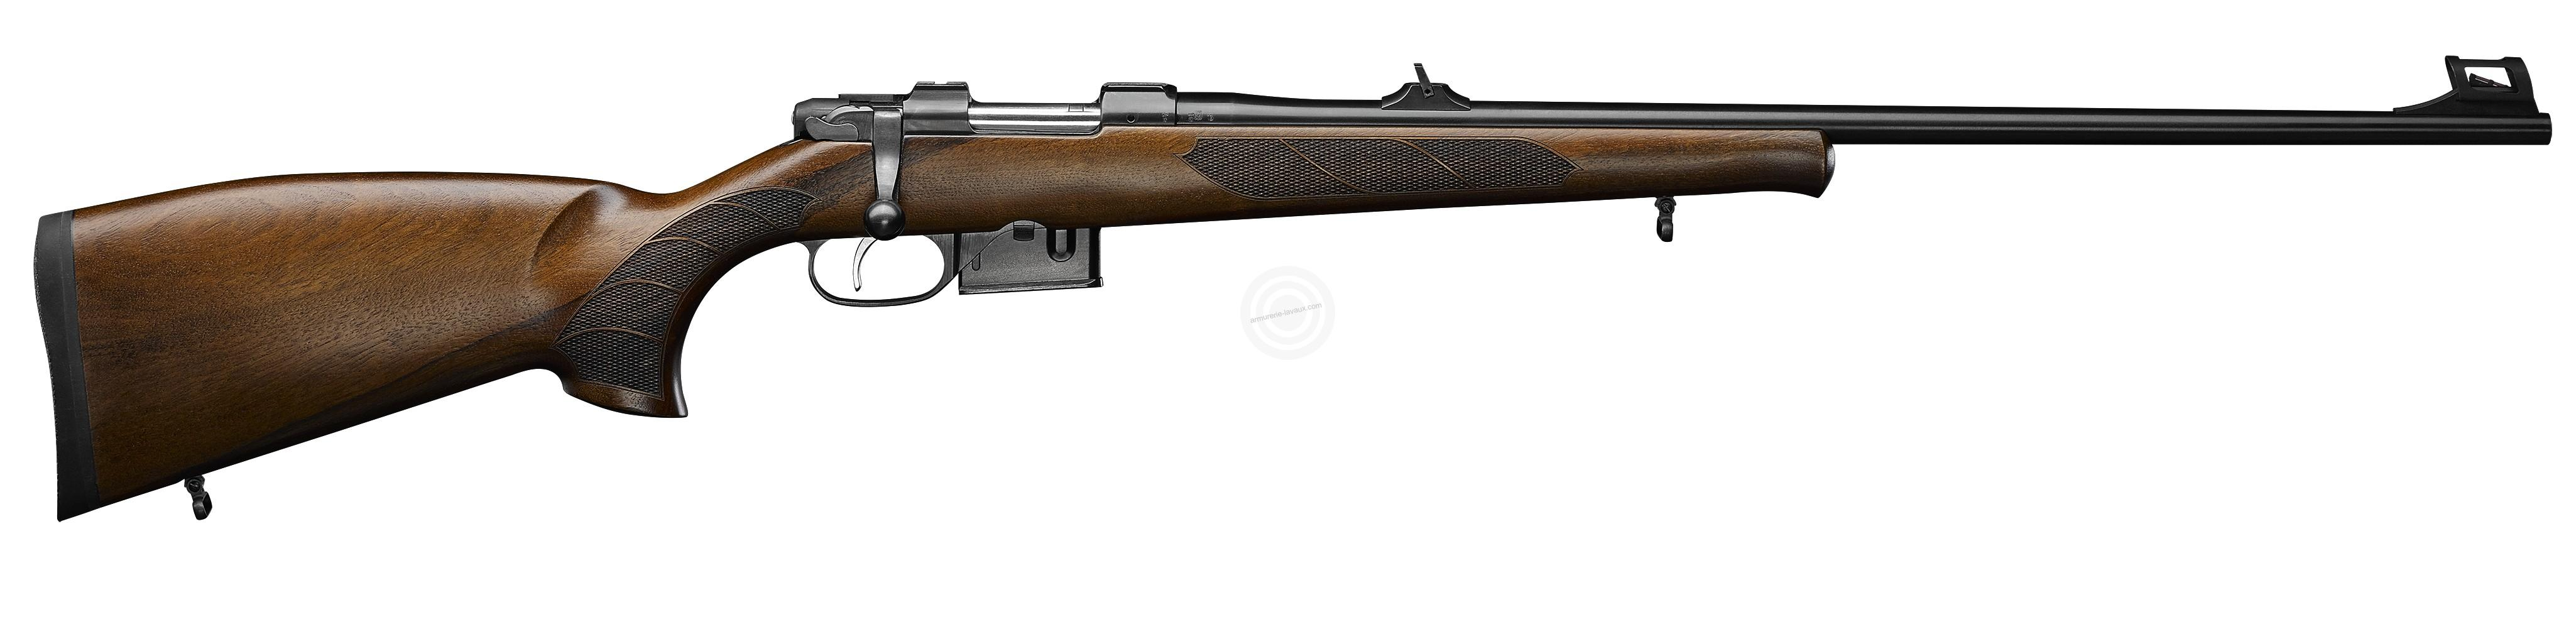 Carabine CZ 527 Luxe cal.222 Rem